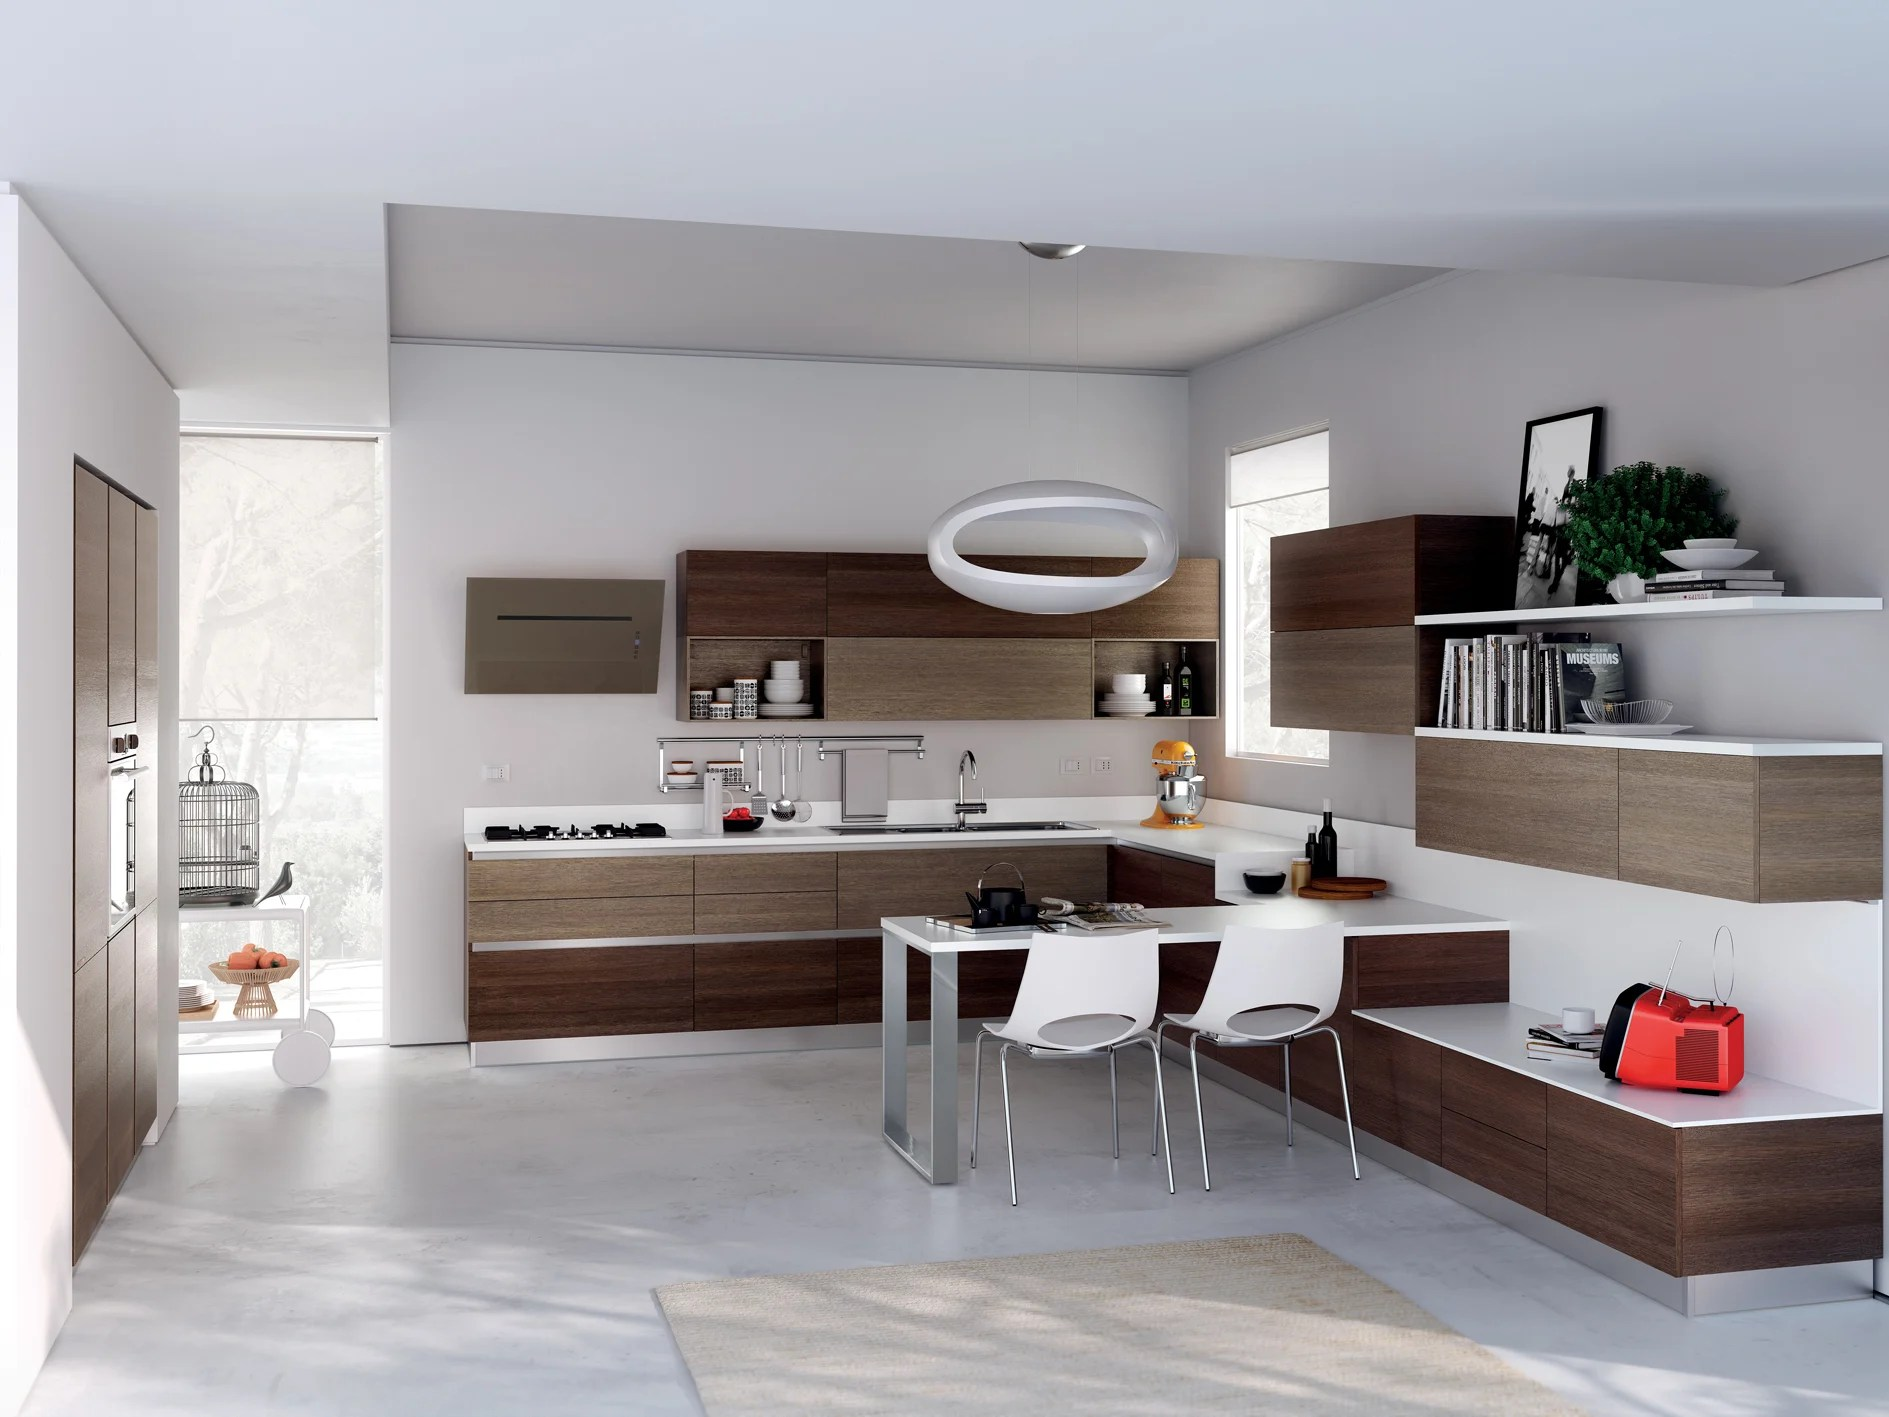 Cucina componibile EVOLUTION Linea Scavolini Basic By Scavolini